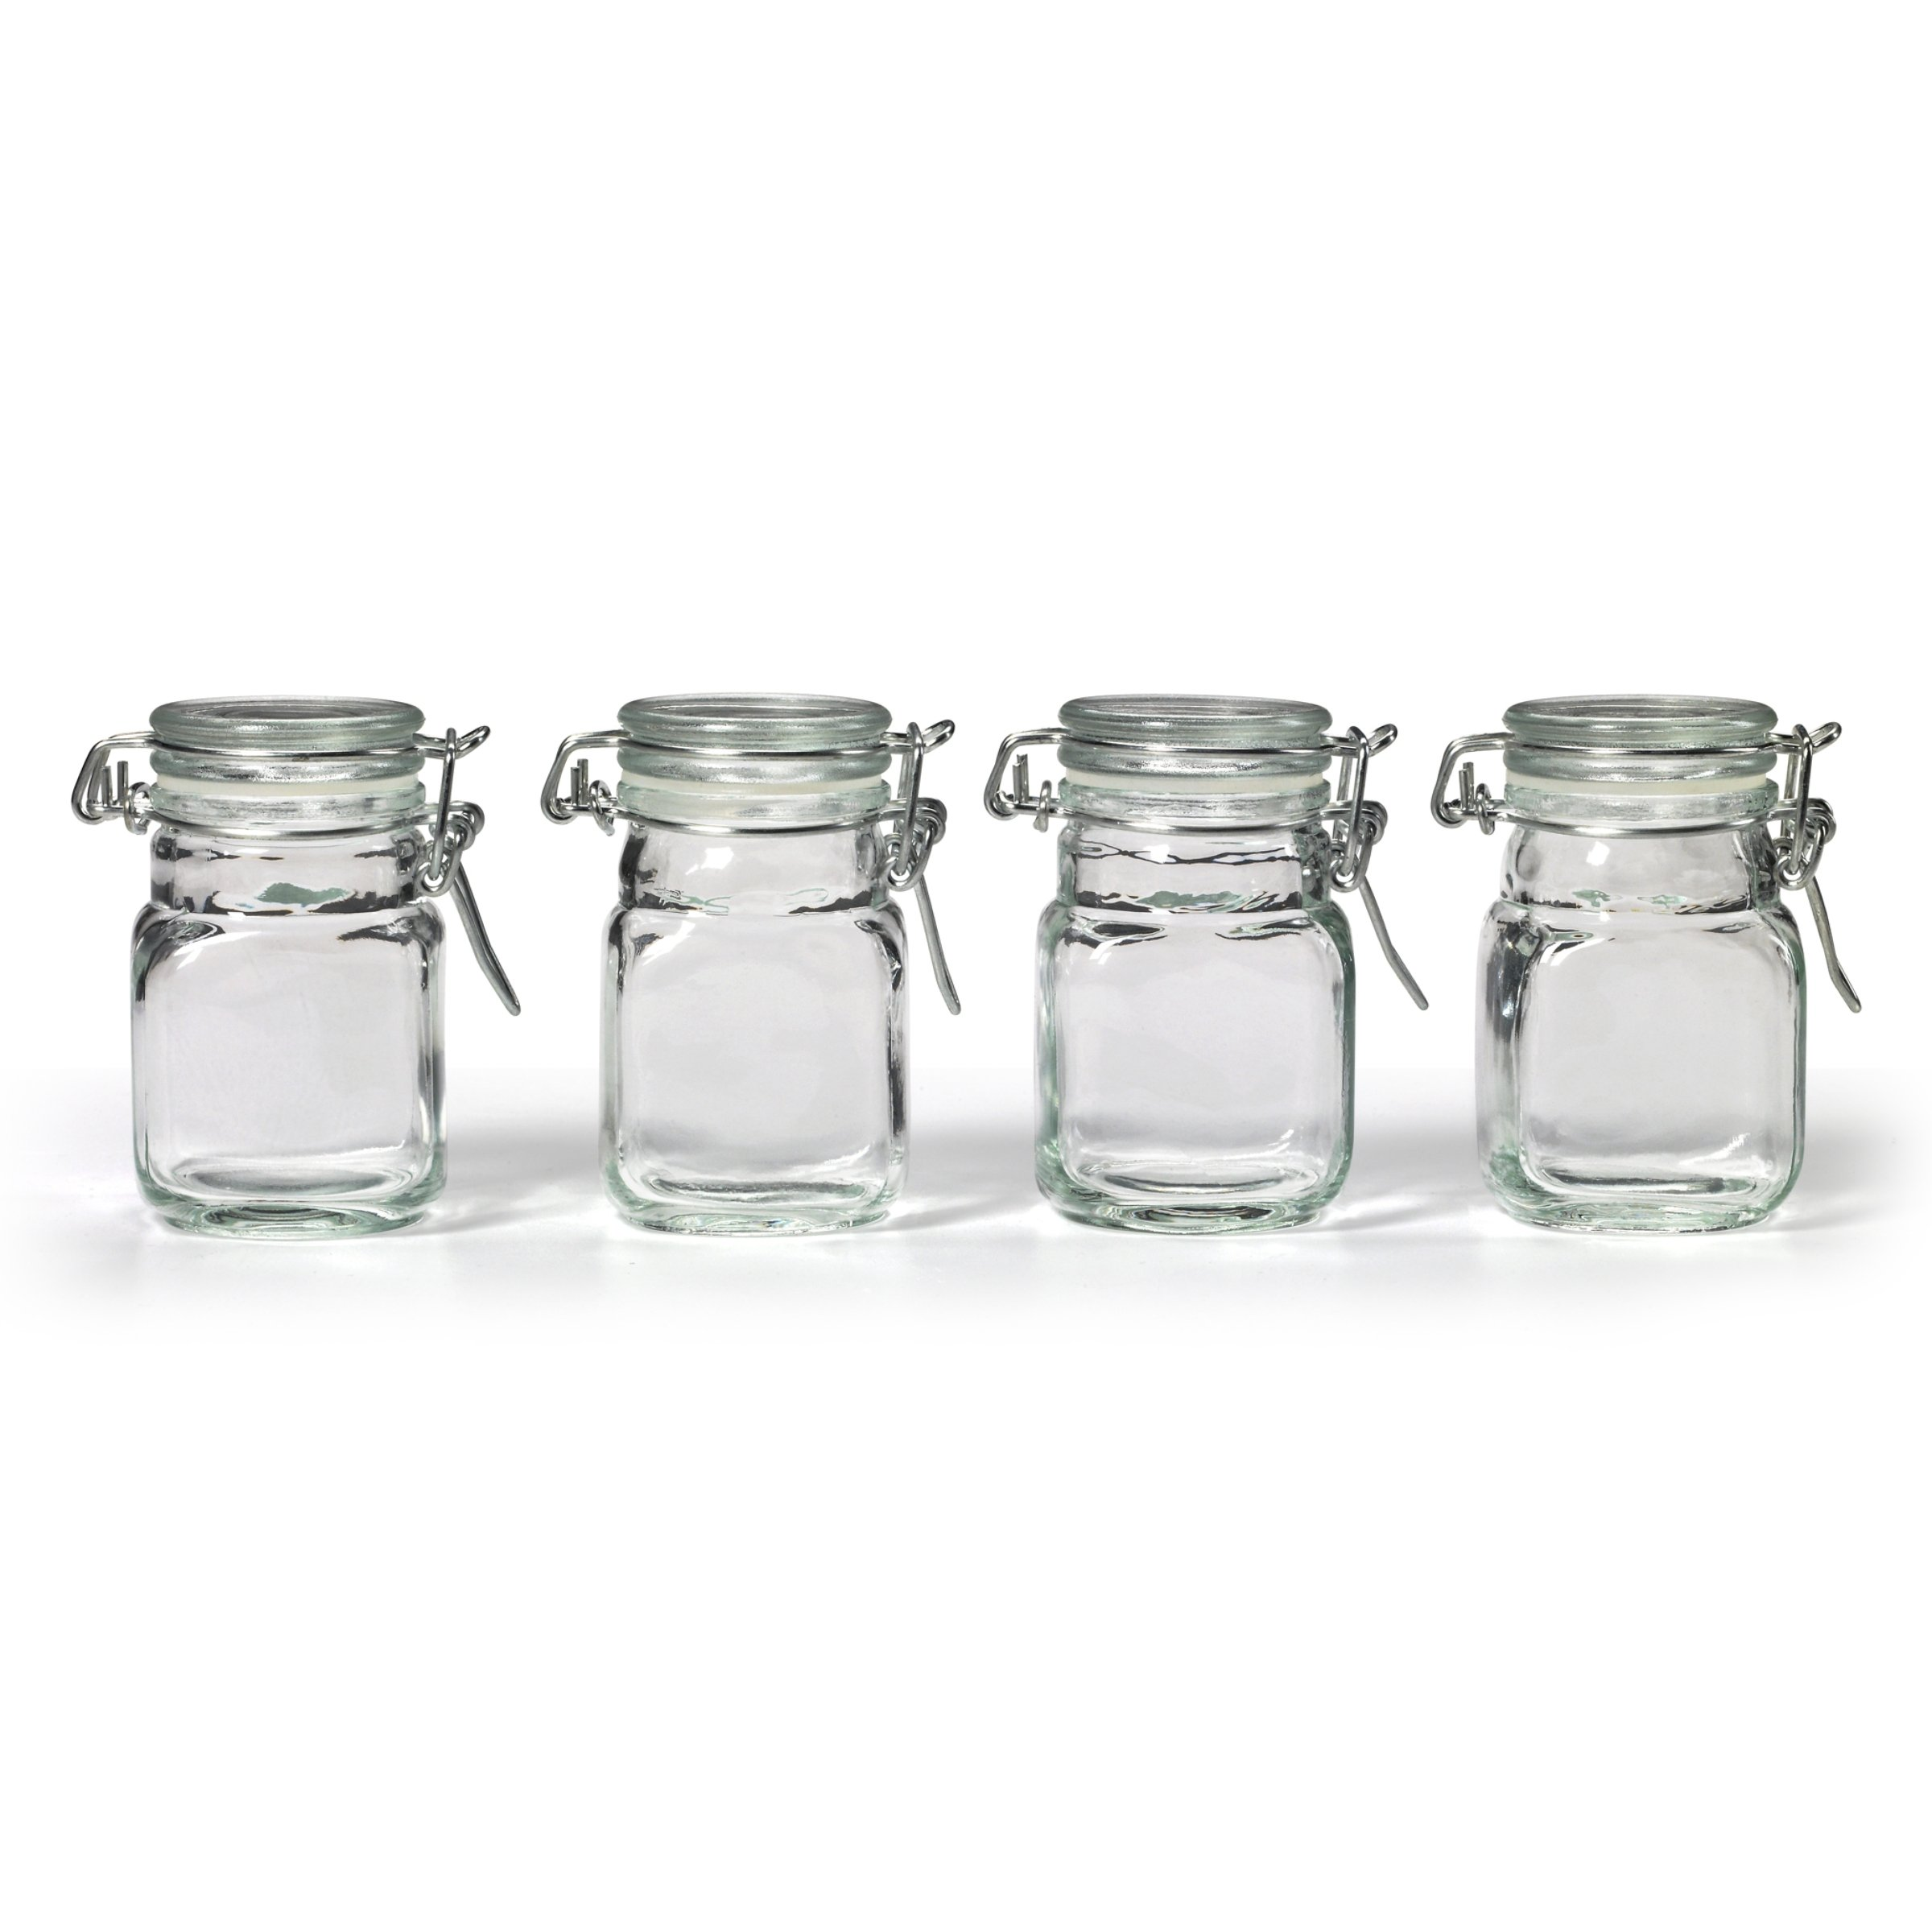 NEW Square Glass Jar & Hinge Lid Set 4 Piece Kitchen